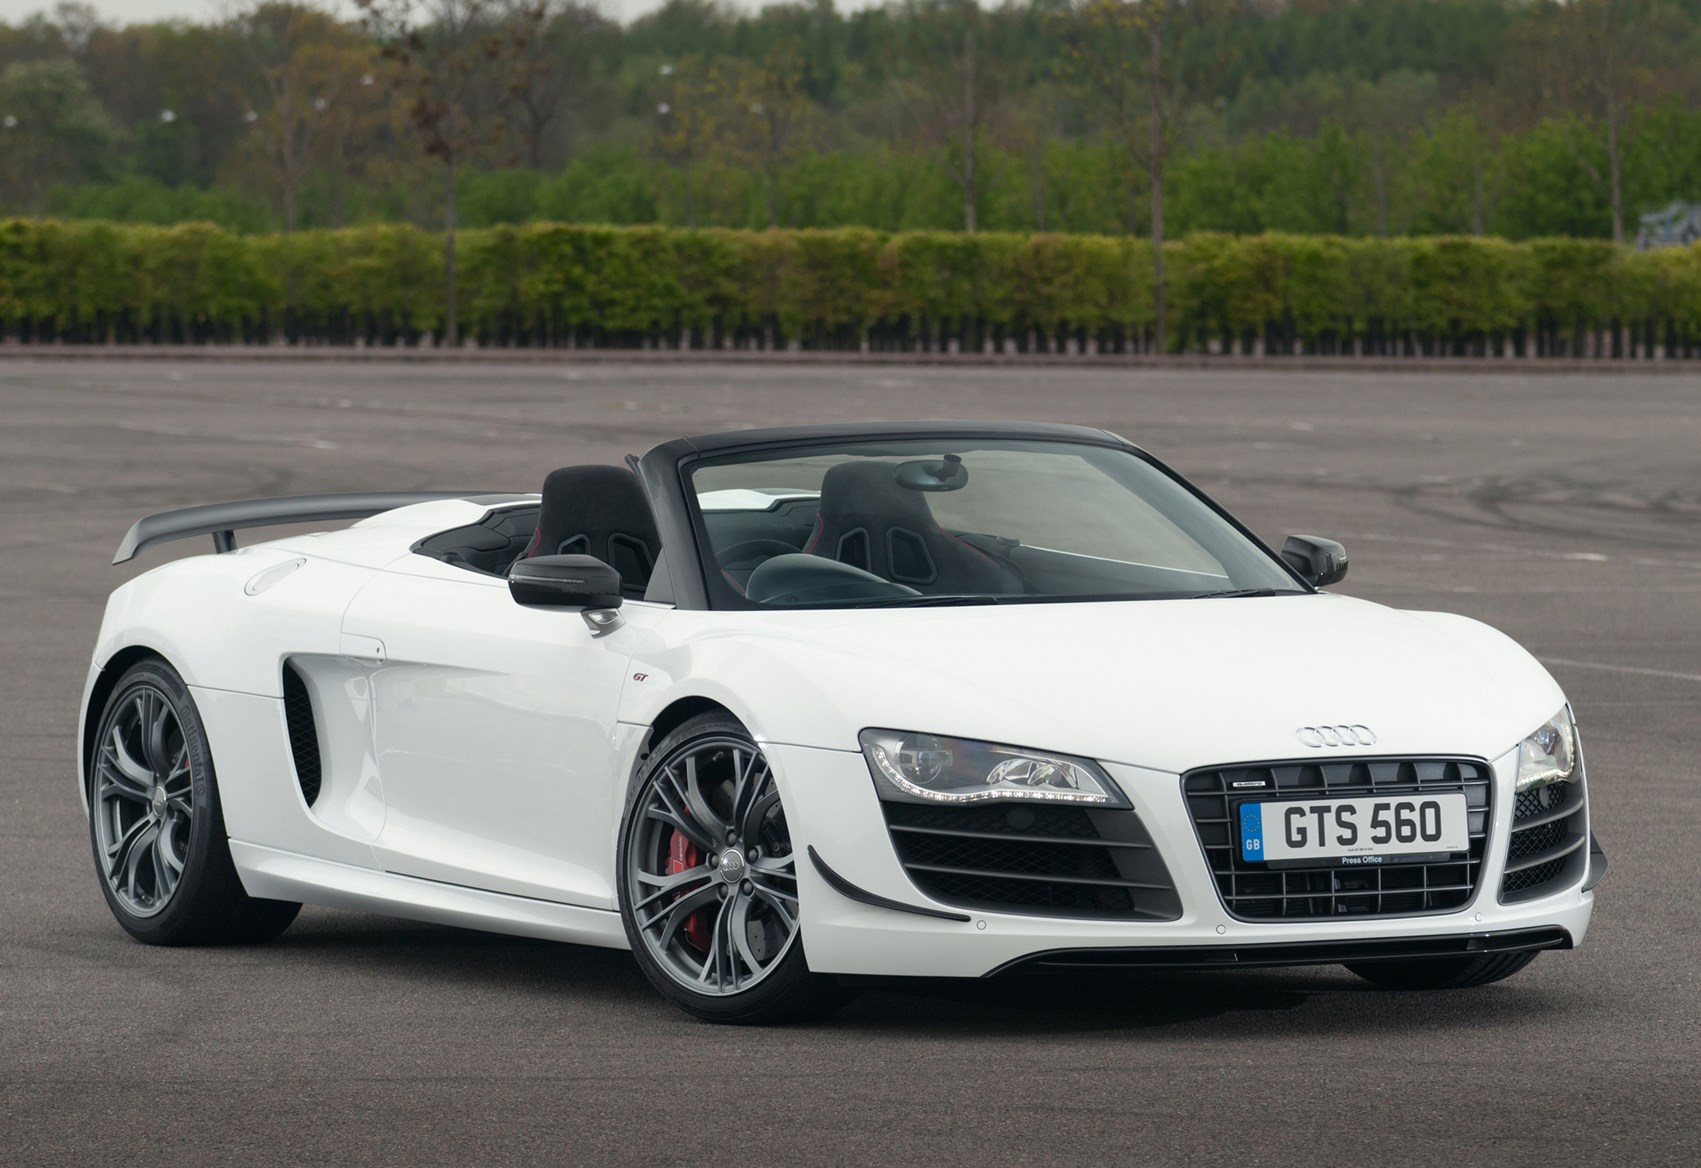 Used Audi R8 GT Spyder (2012 - 2012) Review | Parkers